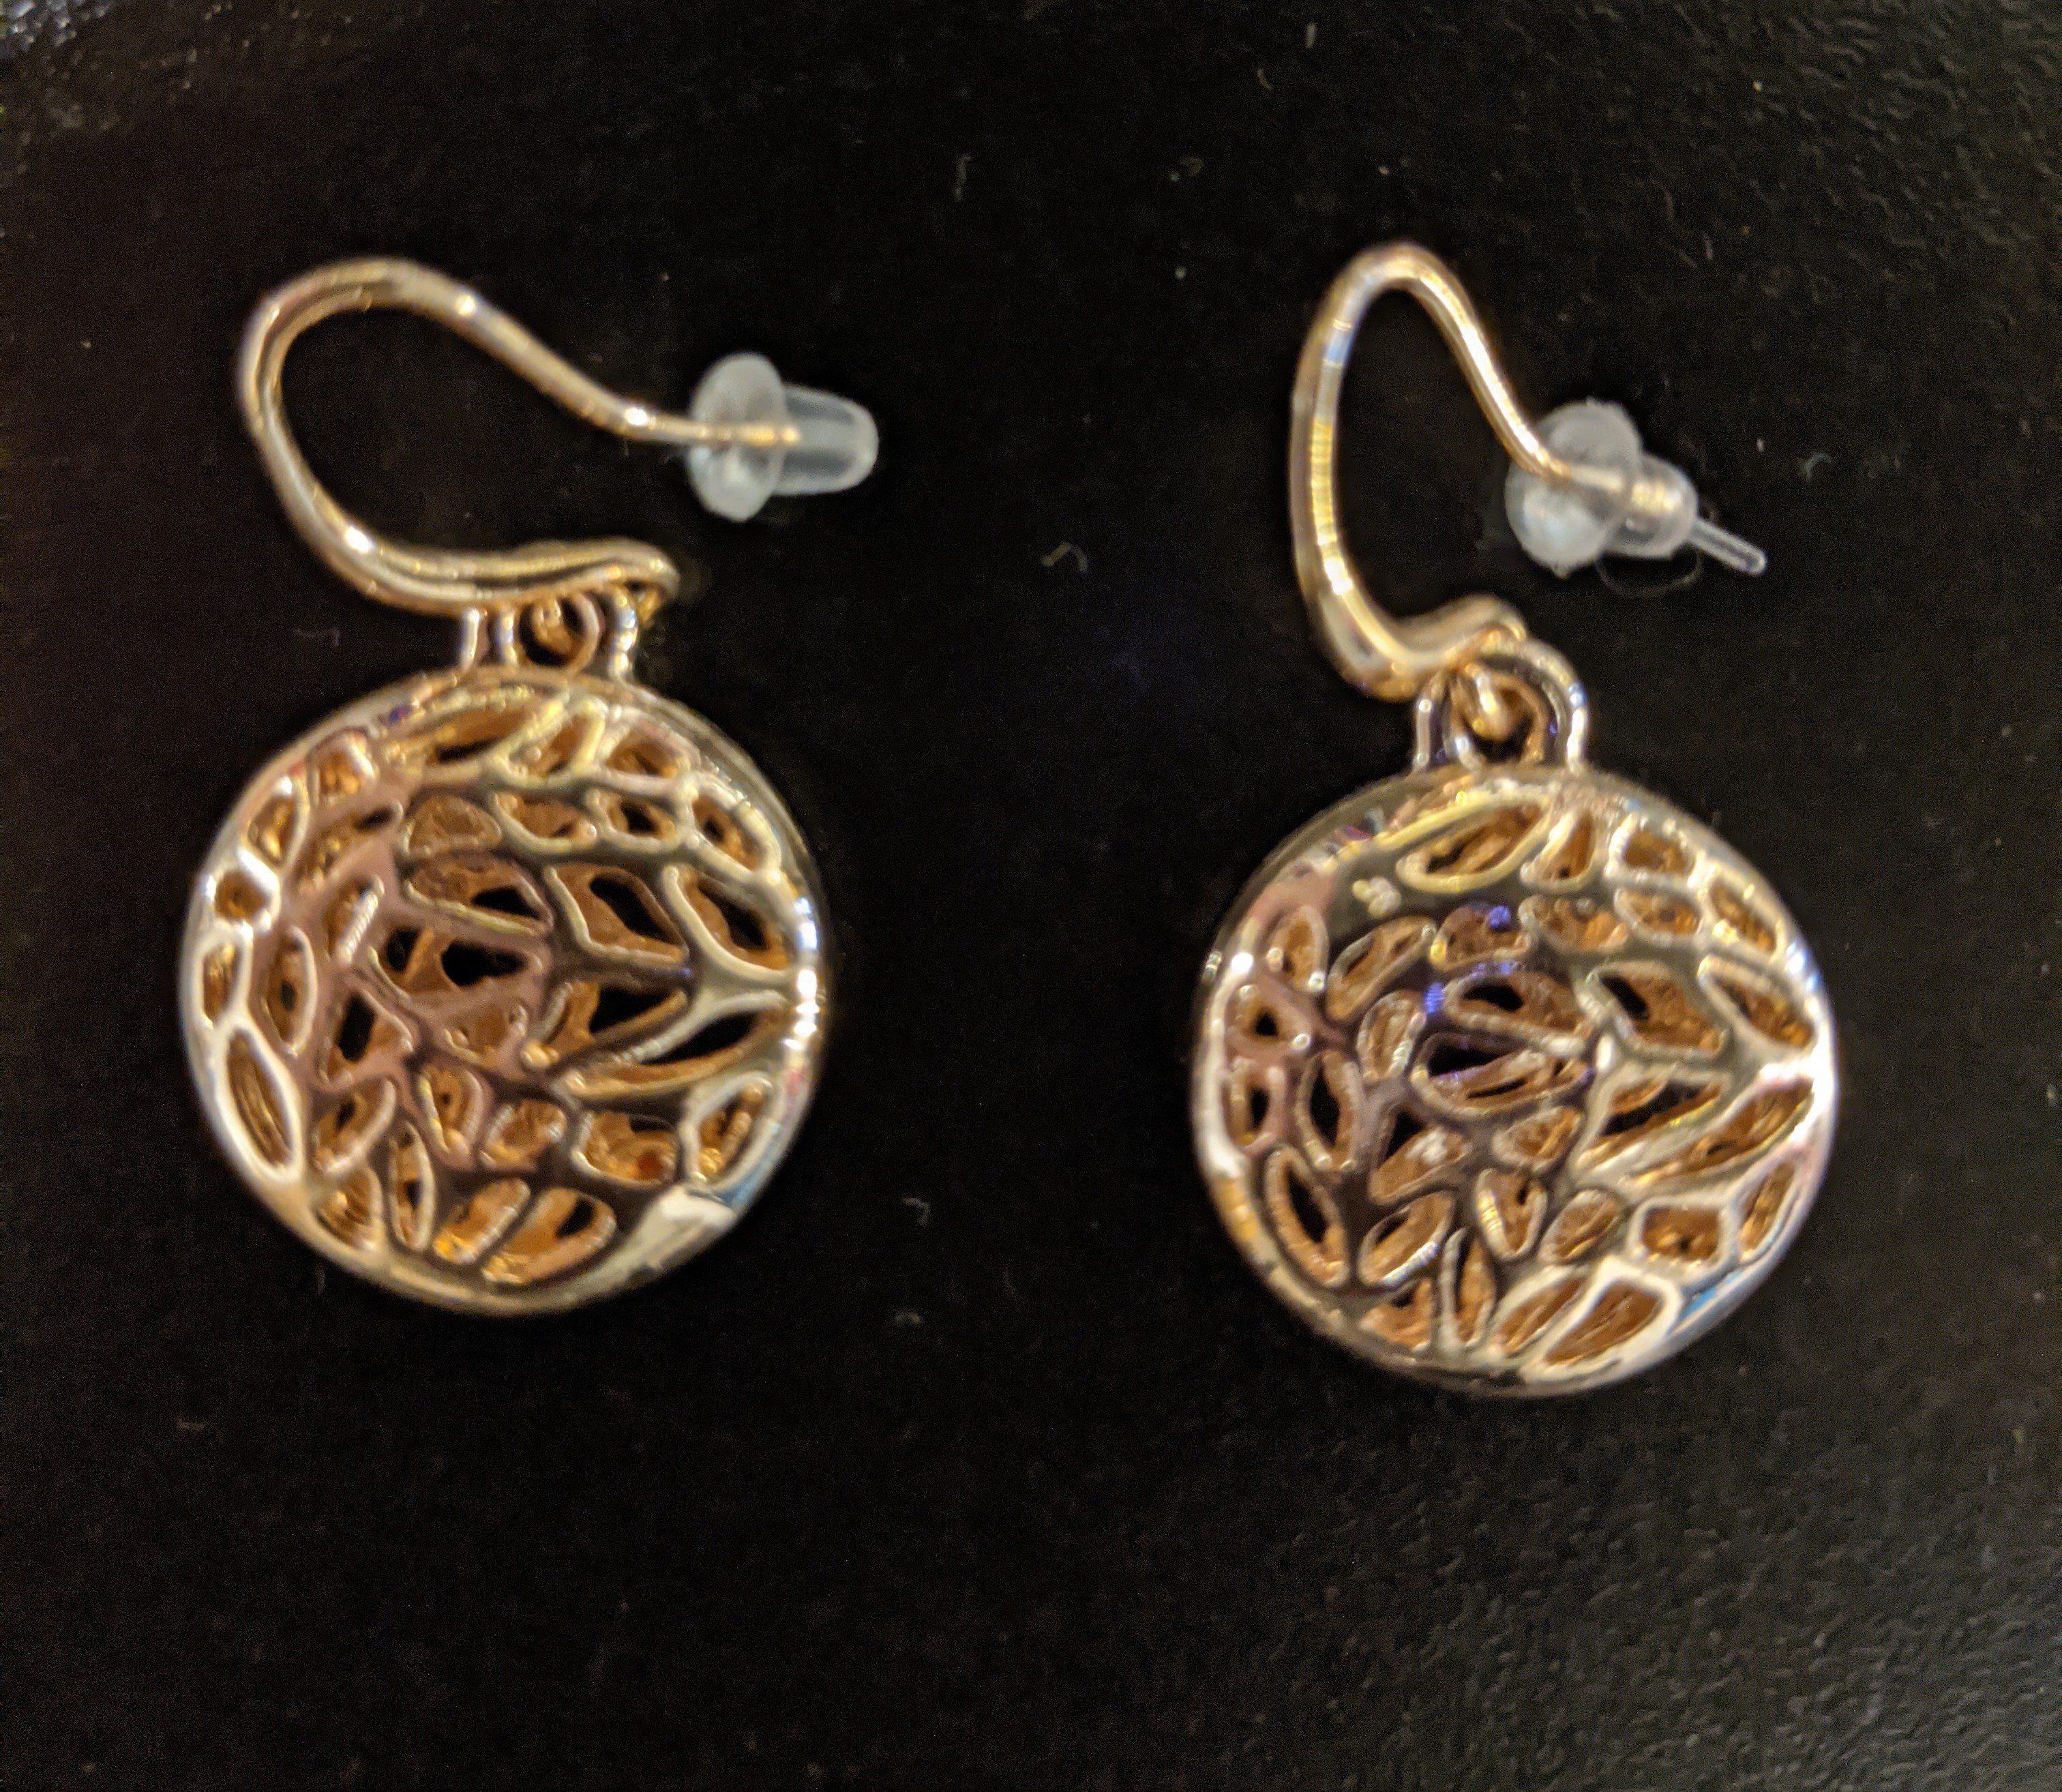 3D Disc Earrings with Cut Out Abstract Detail